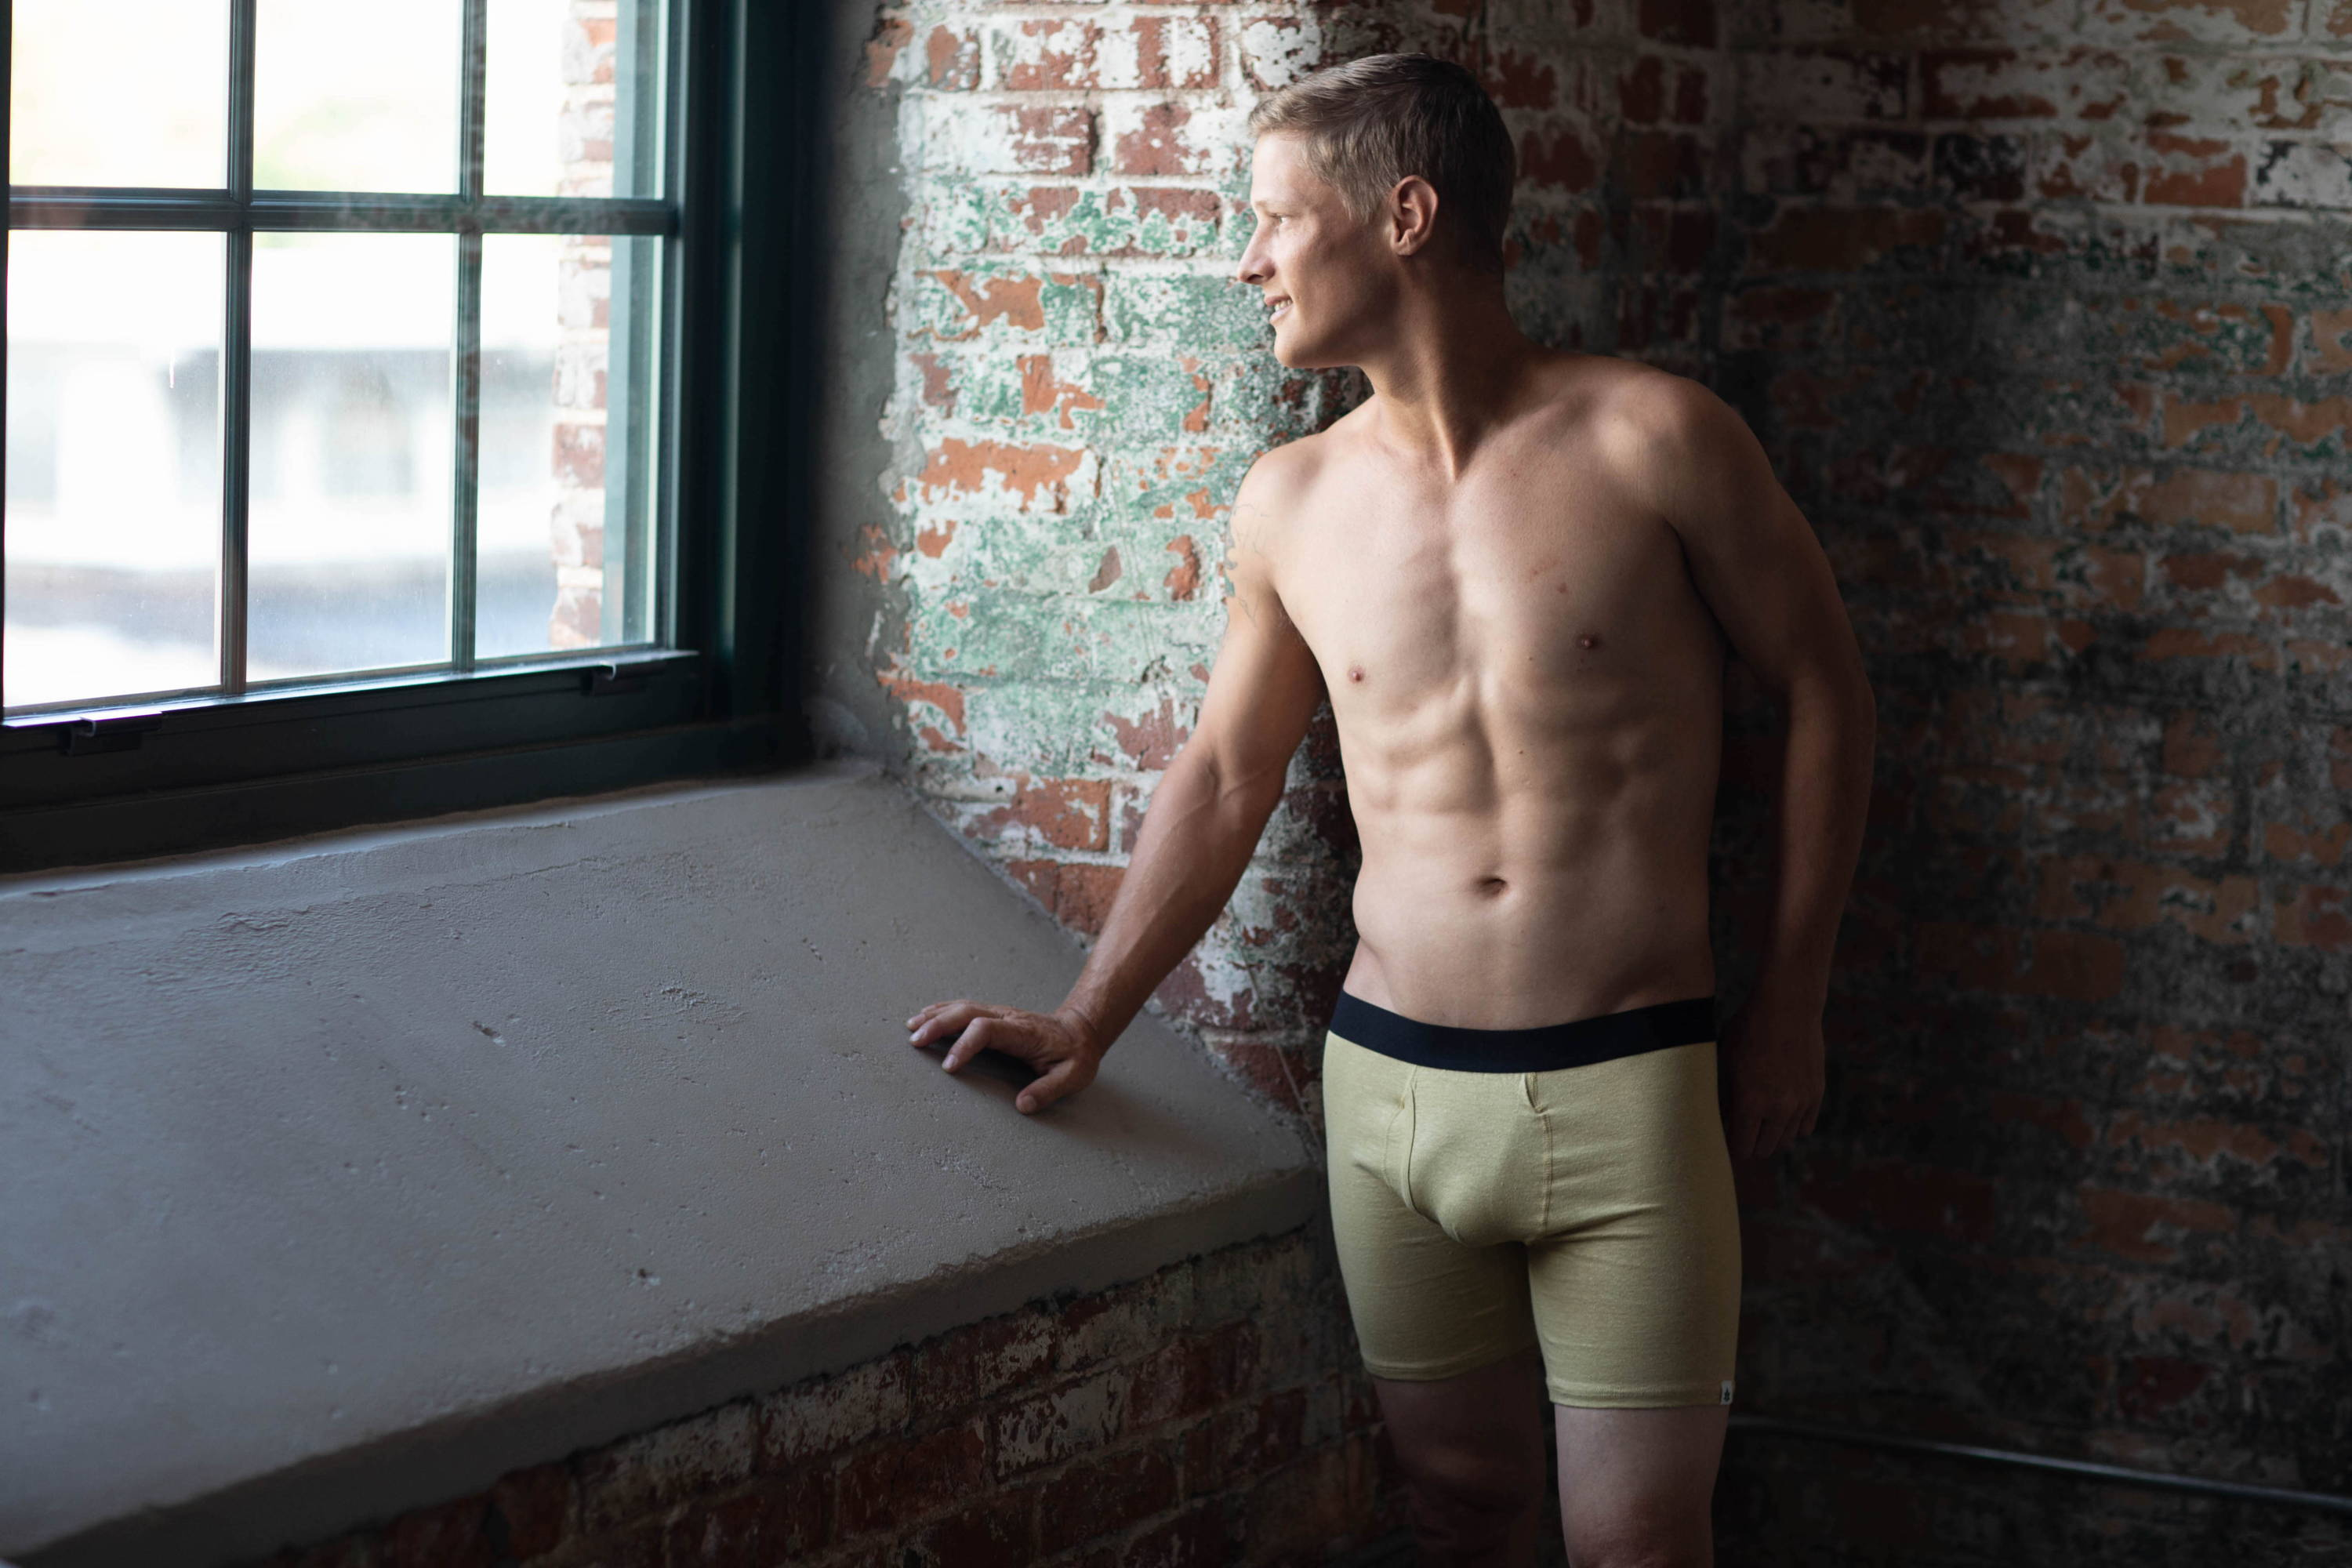 A handsome young man in a brick building looking out of a window while wearing nothing but WAMA hemp boxer briefs.